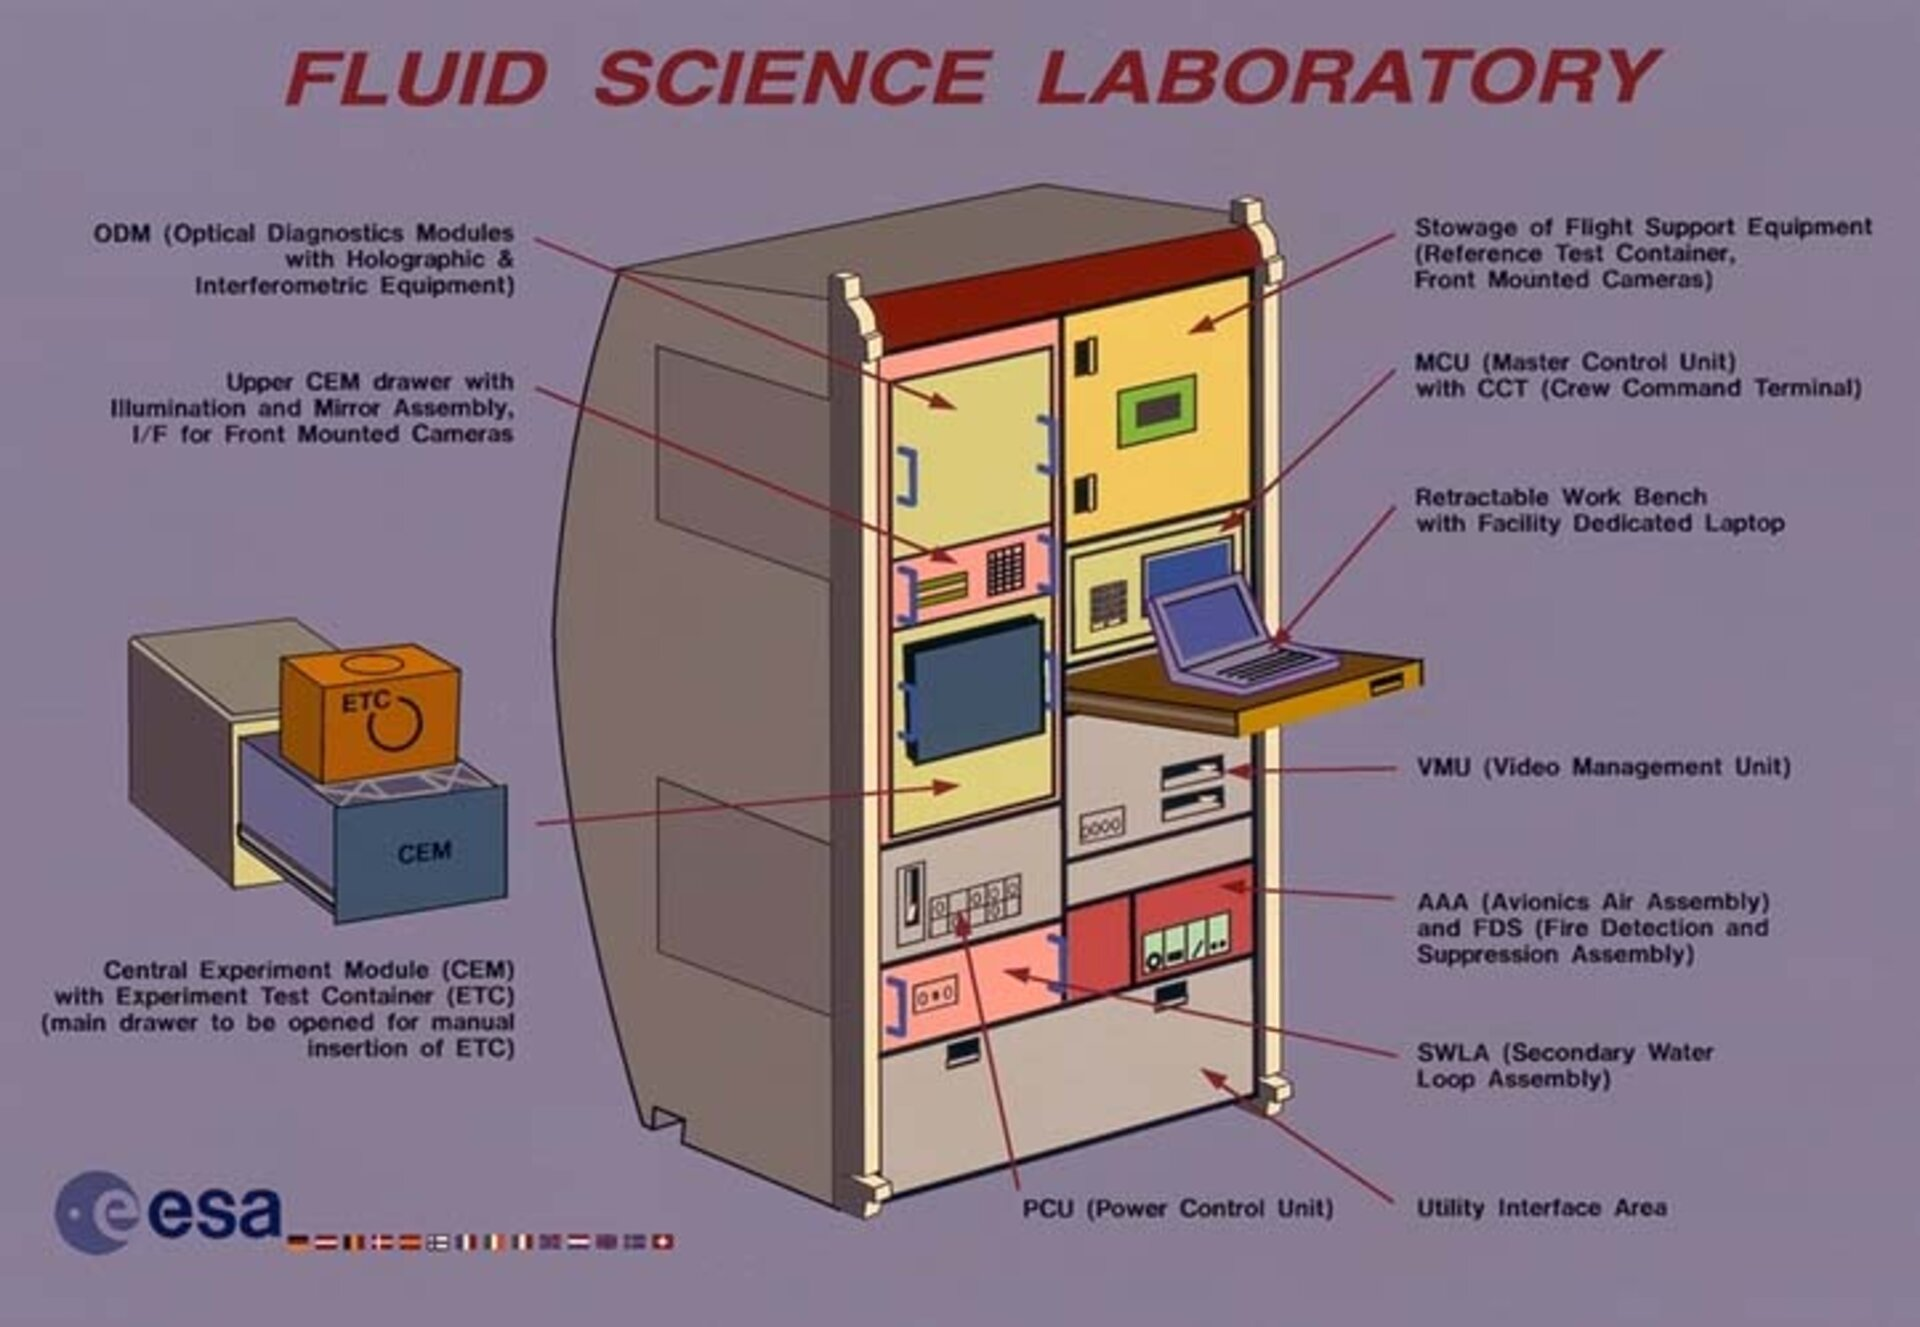 Fluid Science Laboratory for Columbus